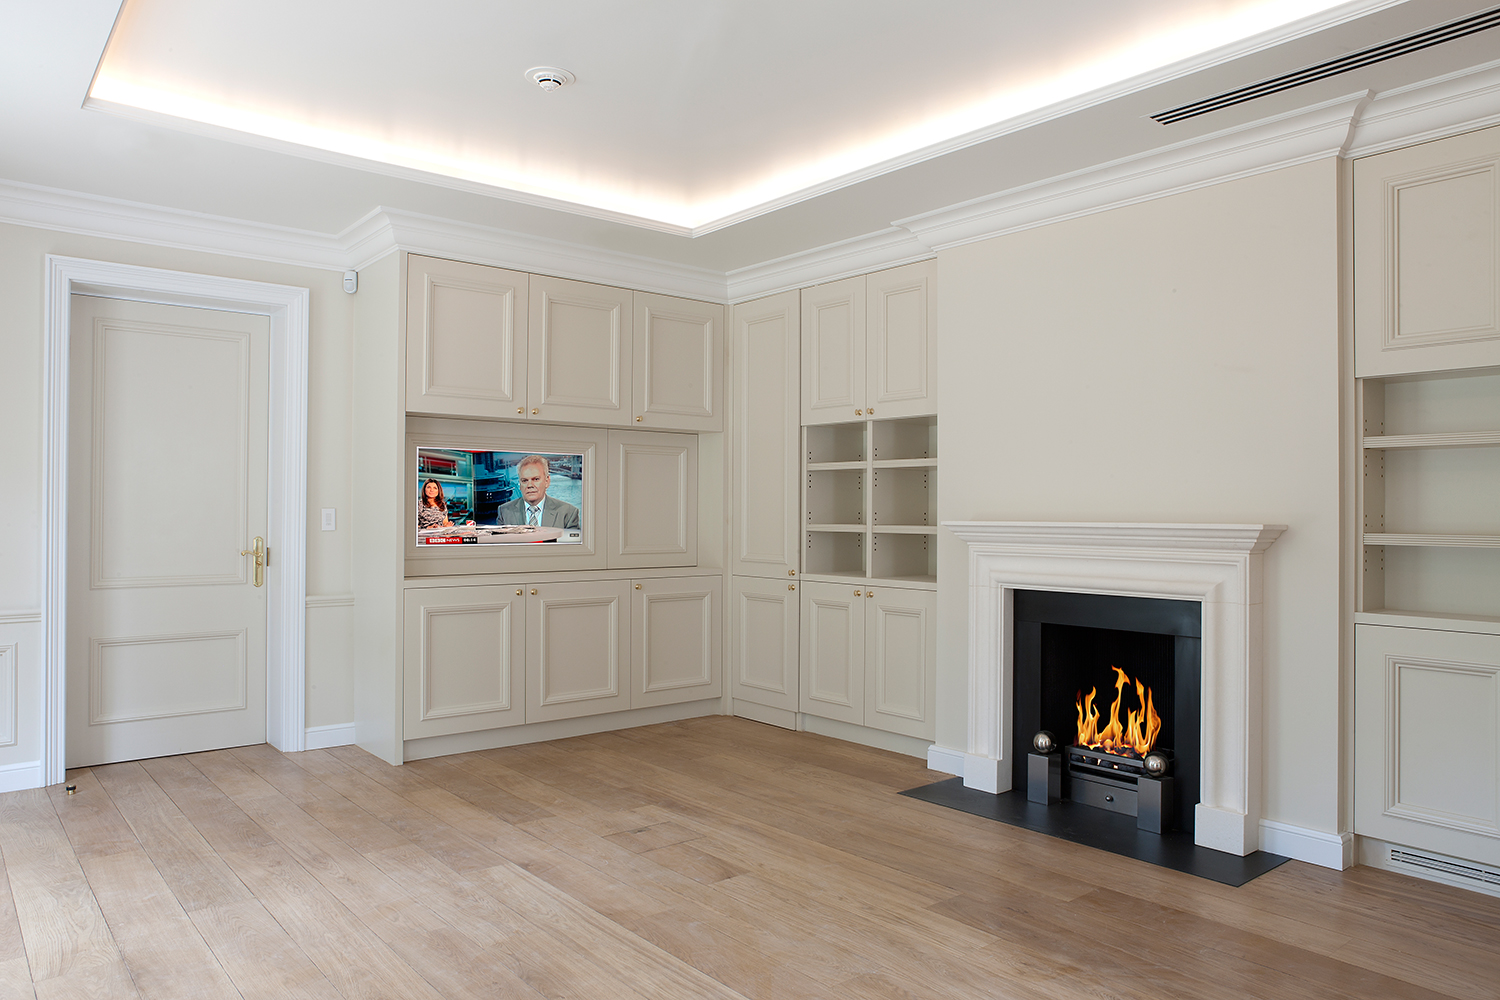 Bespoke Joinery by NBJ